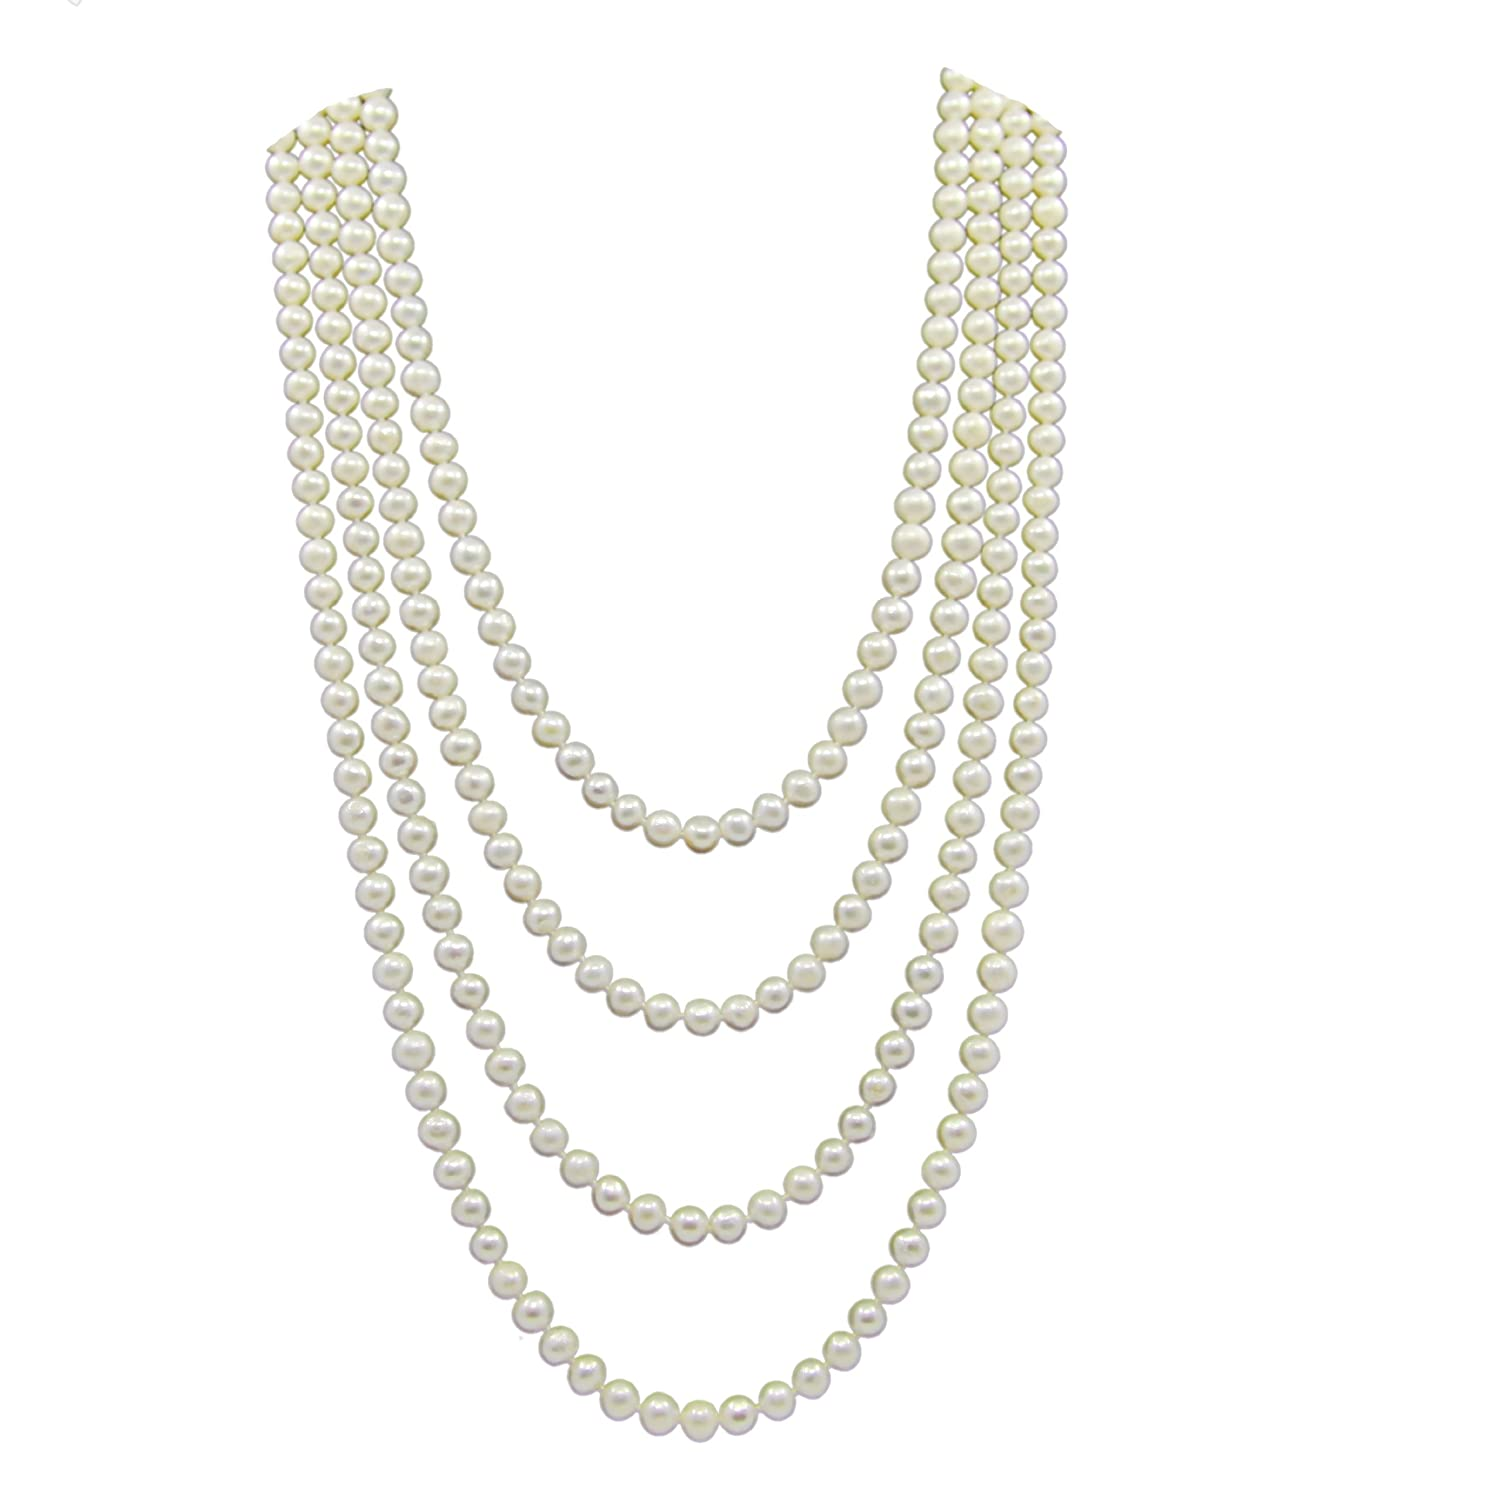 Amazon: 6575 Mm Freshwater Cultured Pearl Endless Necklace 100